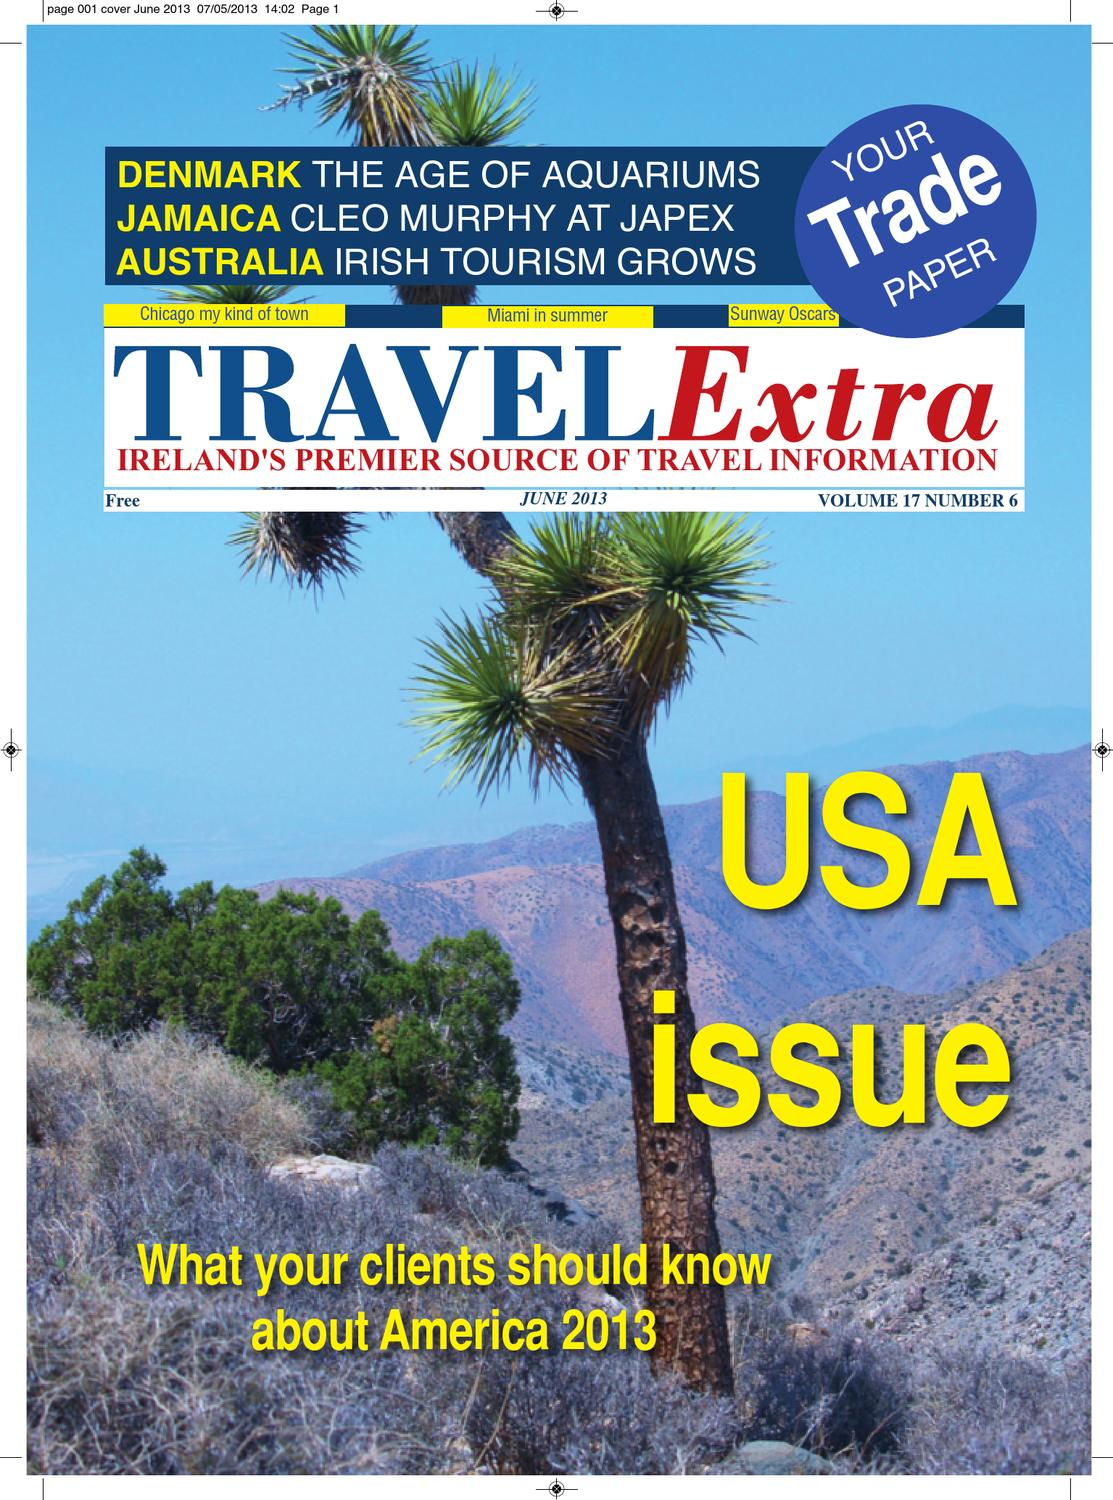 Travel Extra June 2013 by Travel Extra - issuu